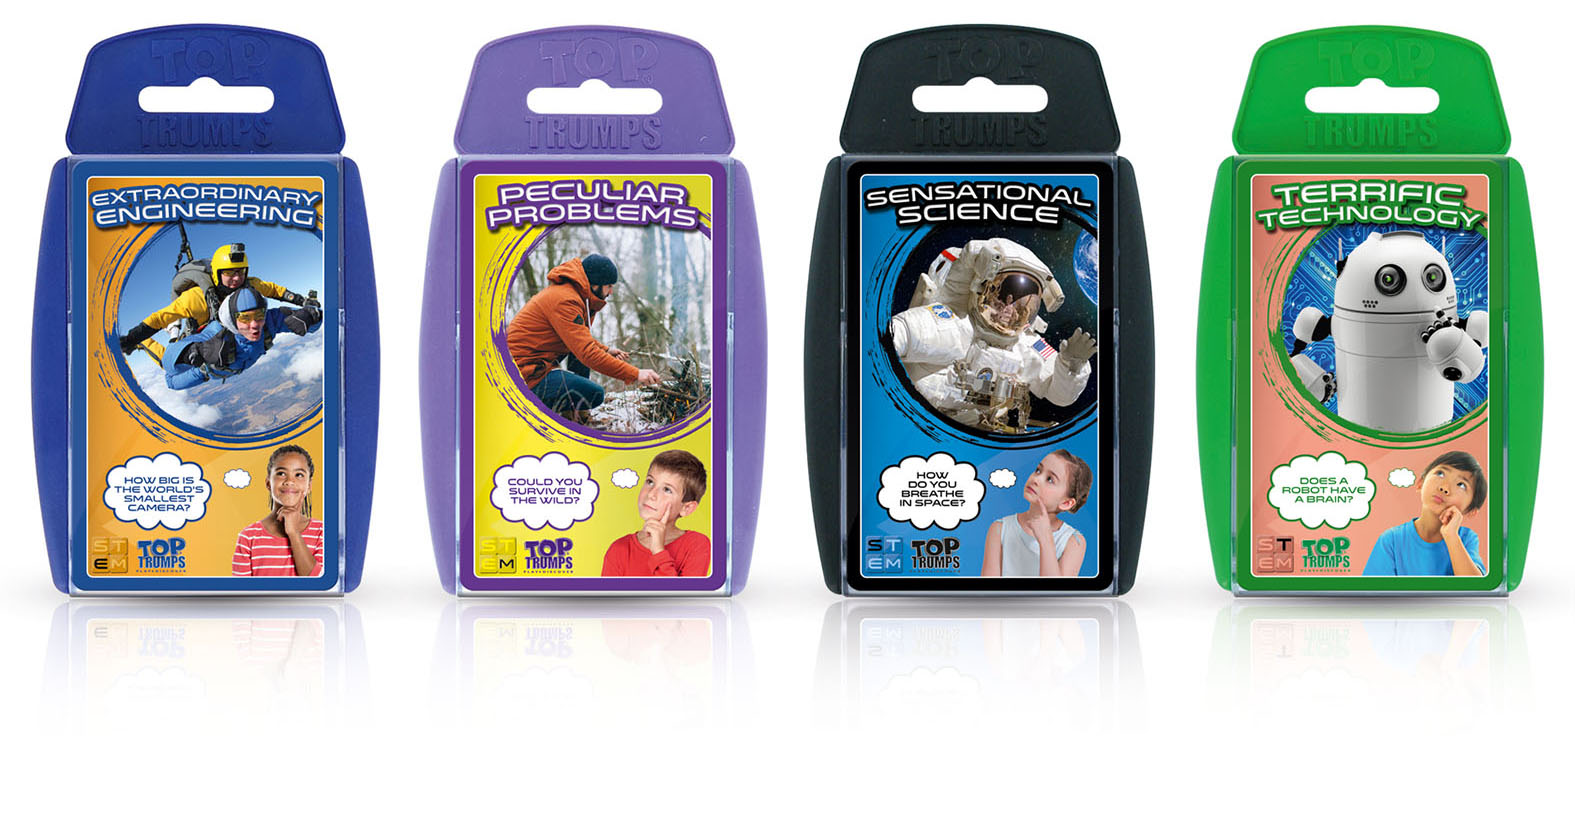 TOP TRUMPS STACKS THE DECK WITH STIMULATING STEM TOPICS FOR YOUNG TECHIES